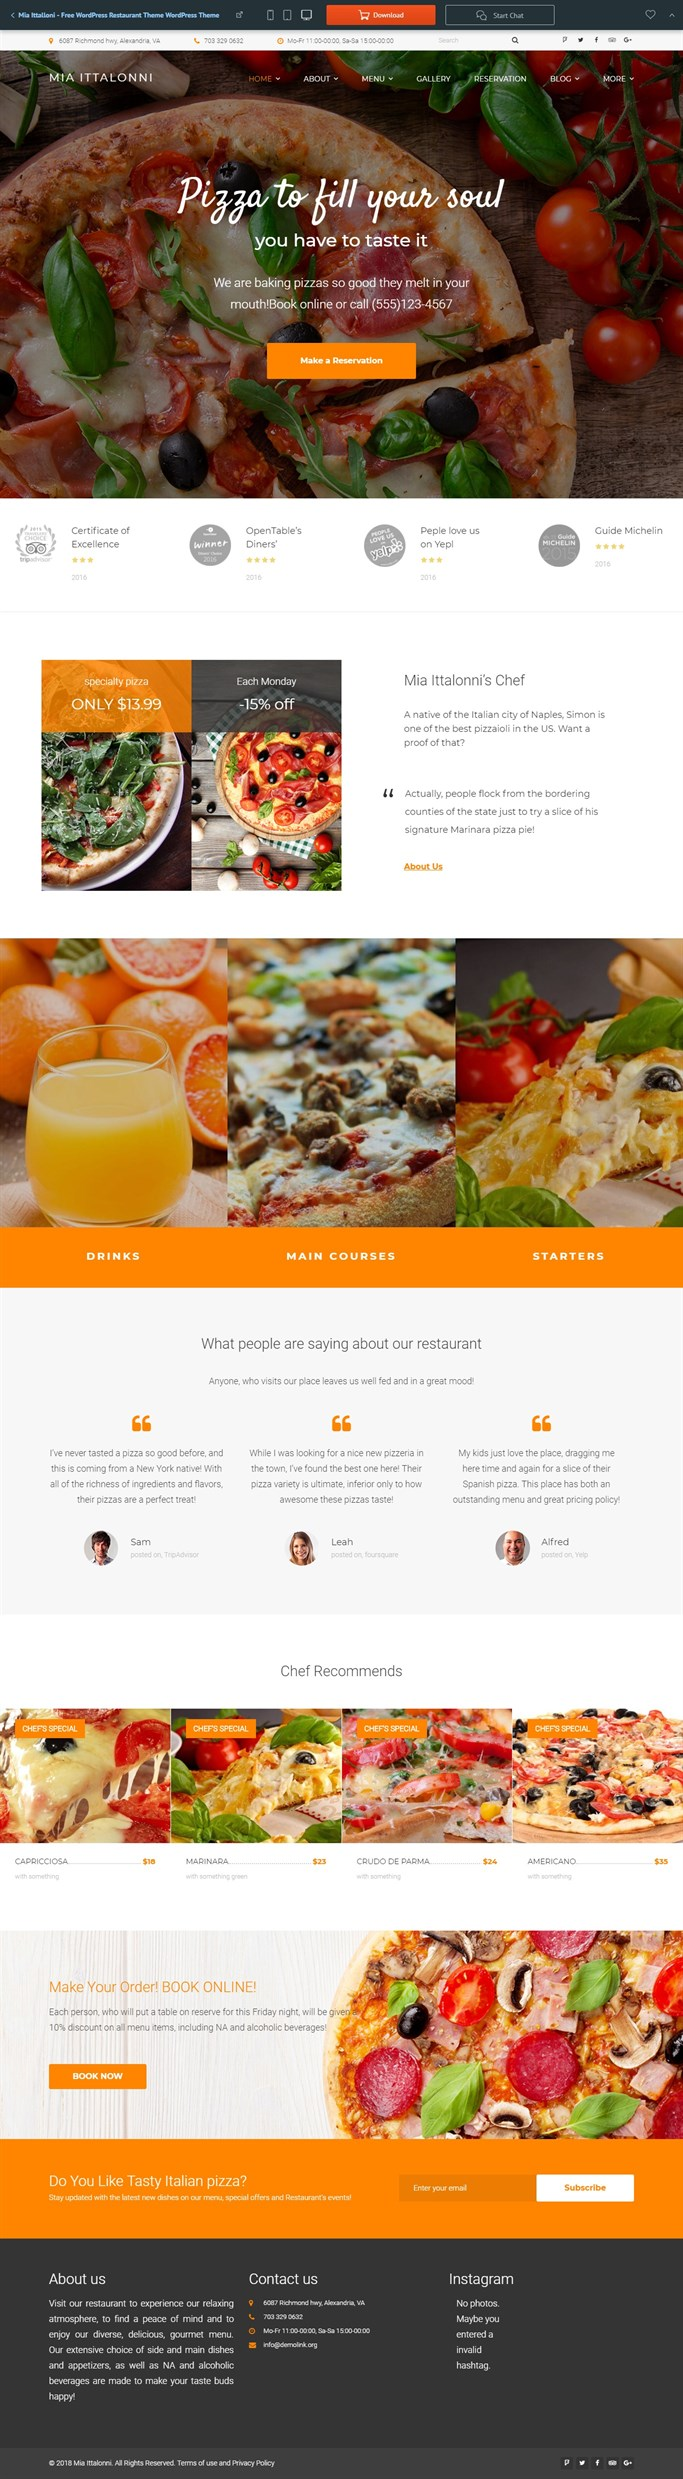 Screenshot of Mia, Free WordPress Theme for Restaurants